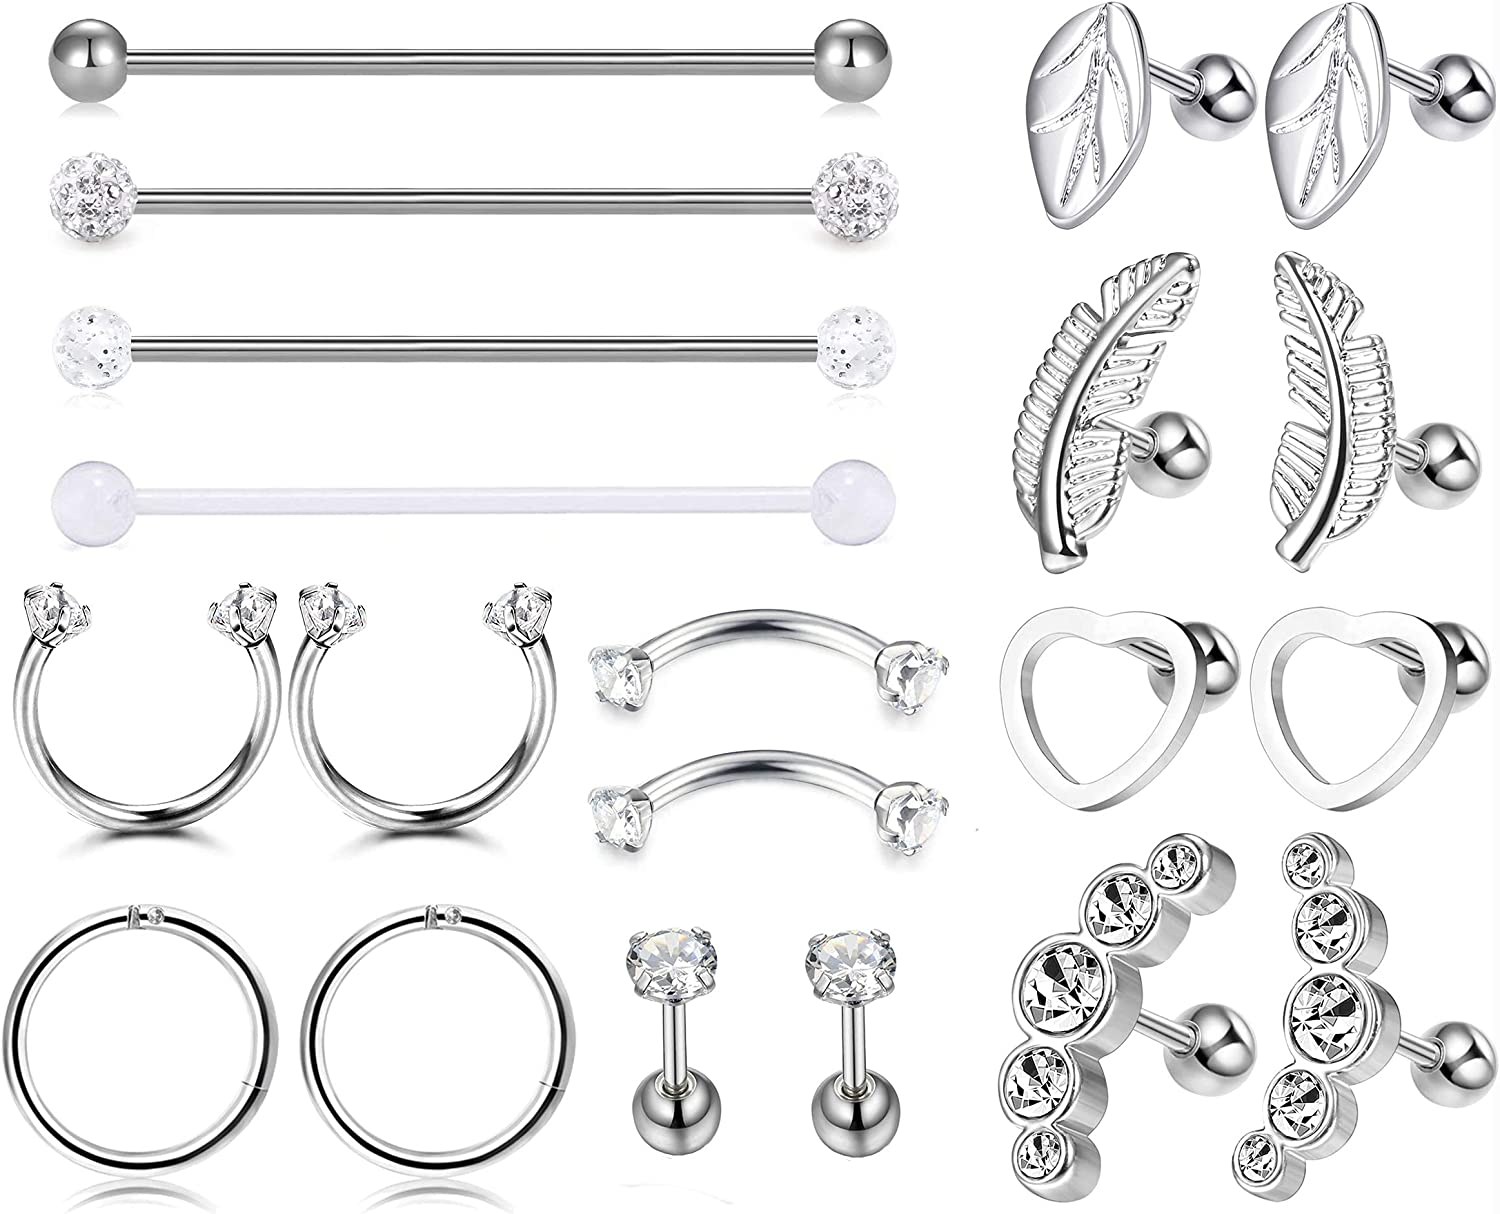 Subiceto 16G Cartilage Tragus Earrings for Women Helix Conch Daith Piercings Septum Nose Hoops 14G Industrial Barbell Piercings Stainless Steel Ear Piercing Set